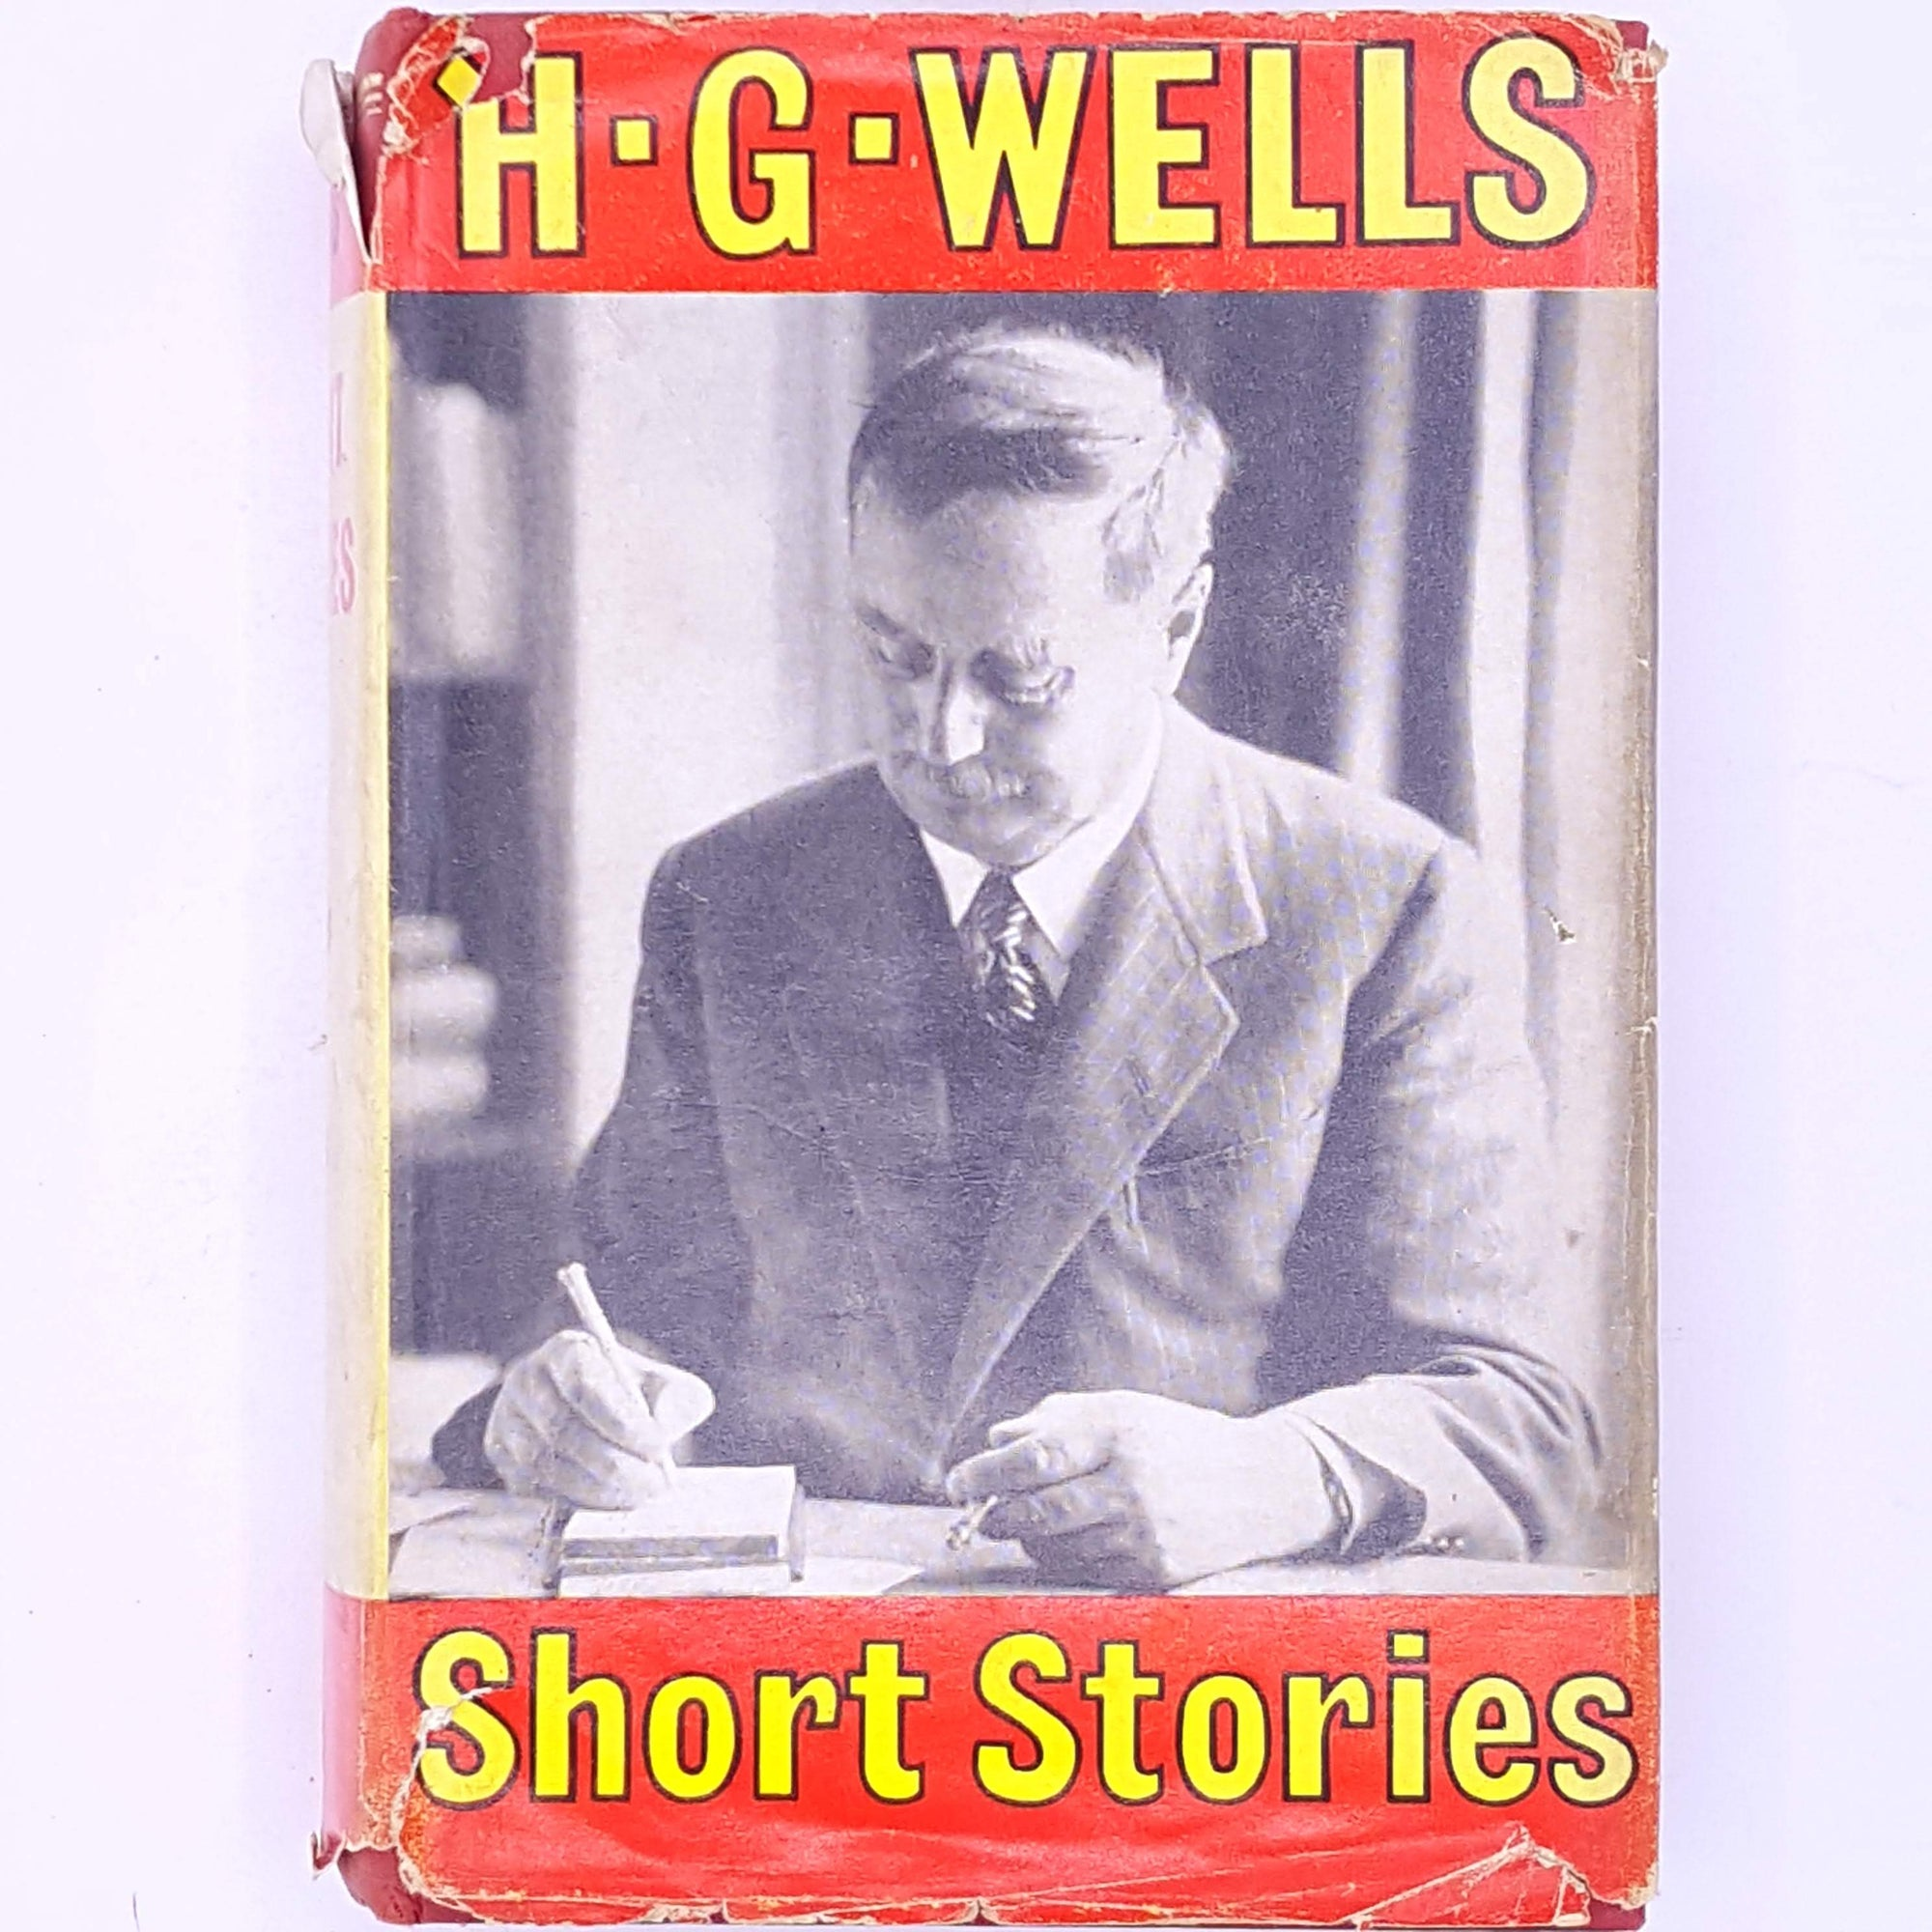 patterned-decorative-H.G.Wells-short-stories-country-house-library-thrift-old-books-poetry-antique-classic-poems-vintage-